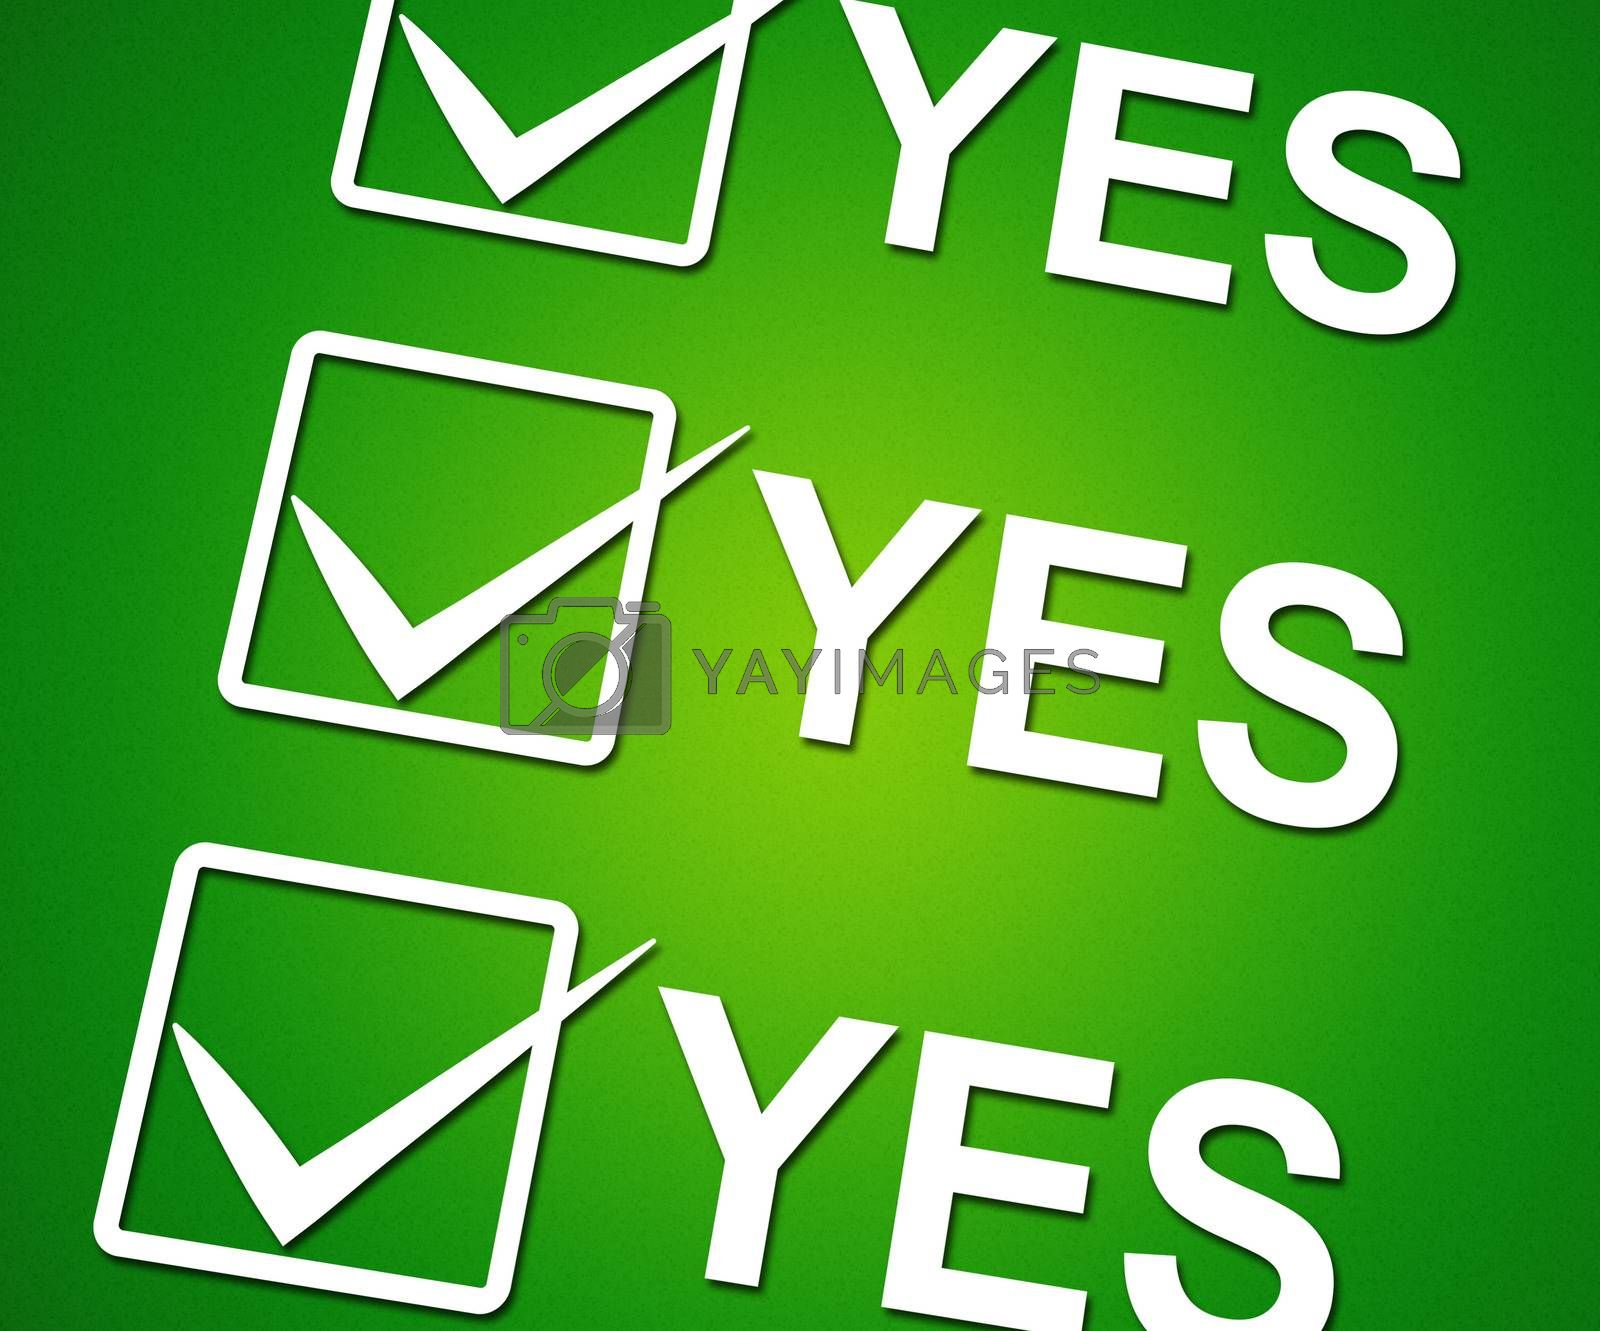 Yes Ticks Indicates Correct Ok And Agreement by stuartmiles